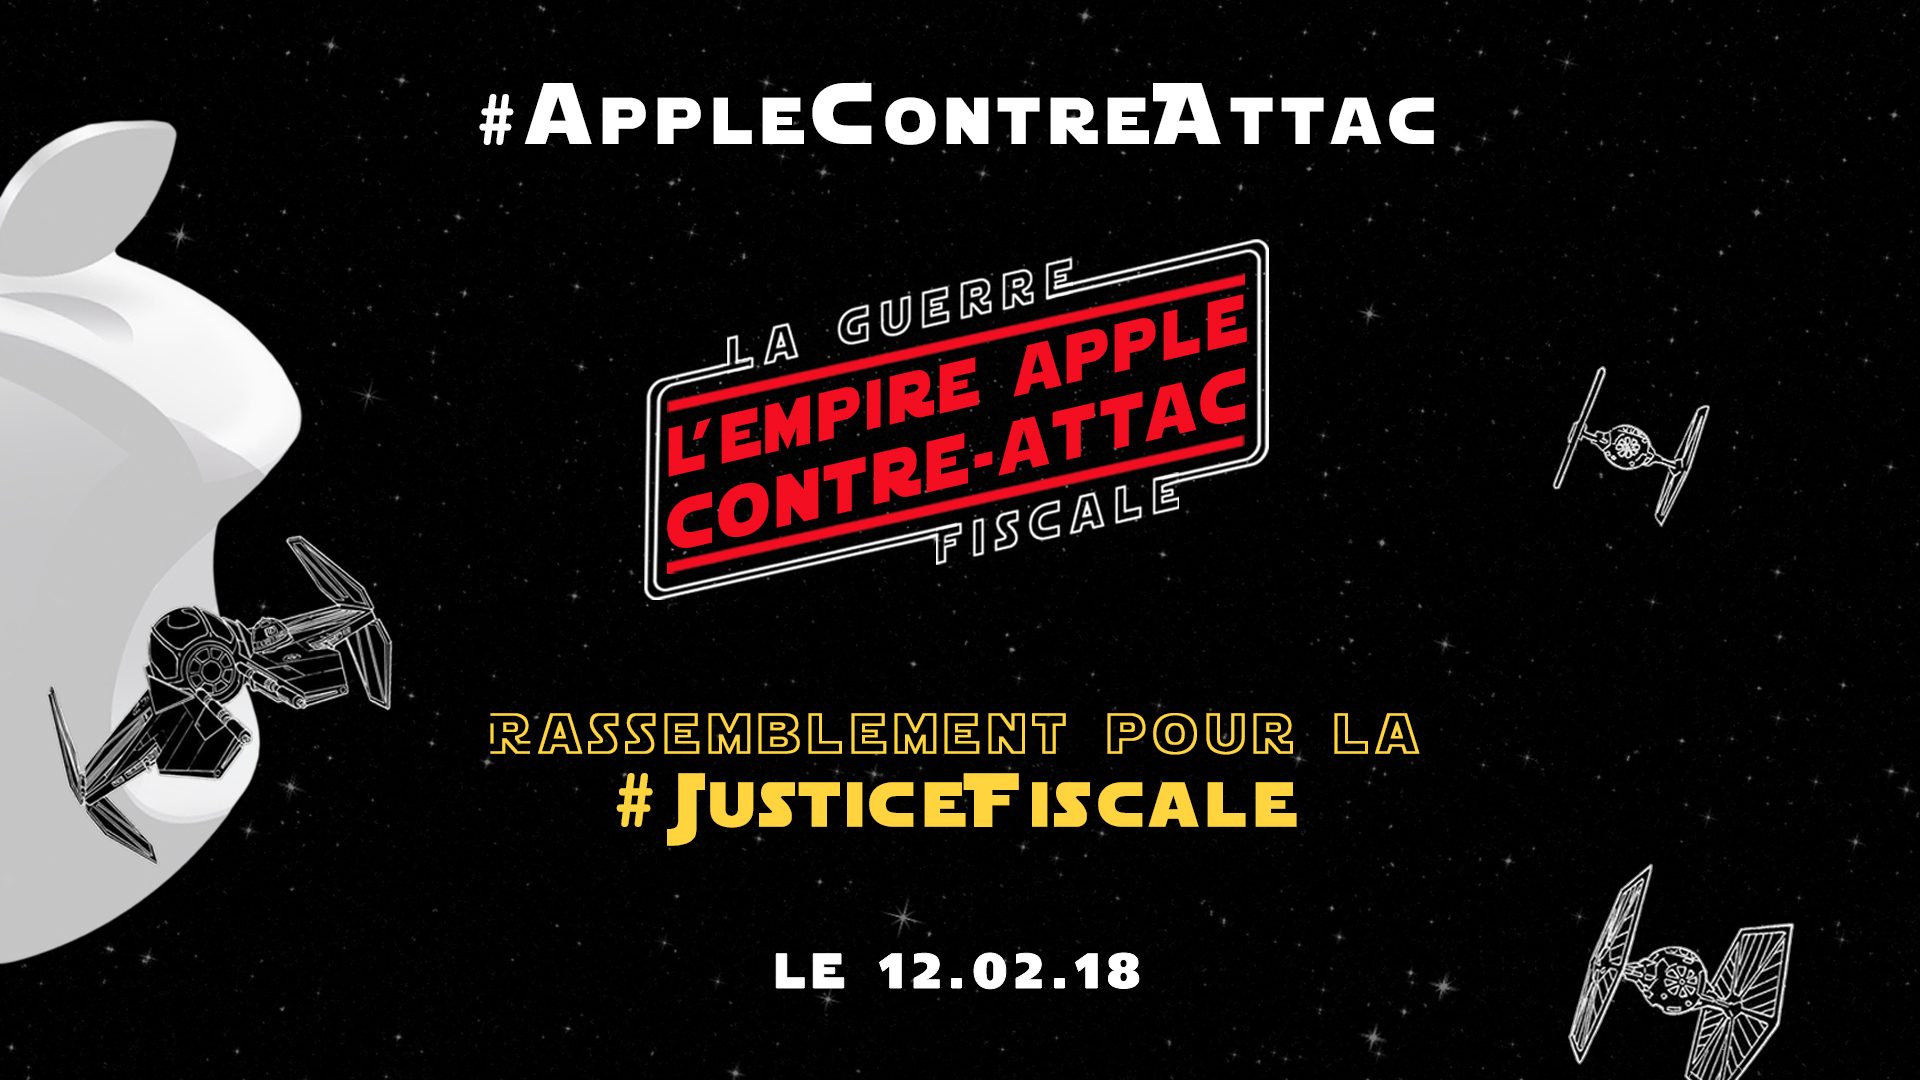 #AppleContreAttac, Soutenons Attac